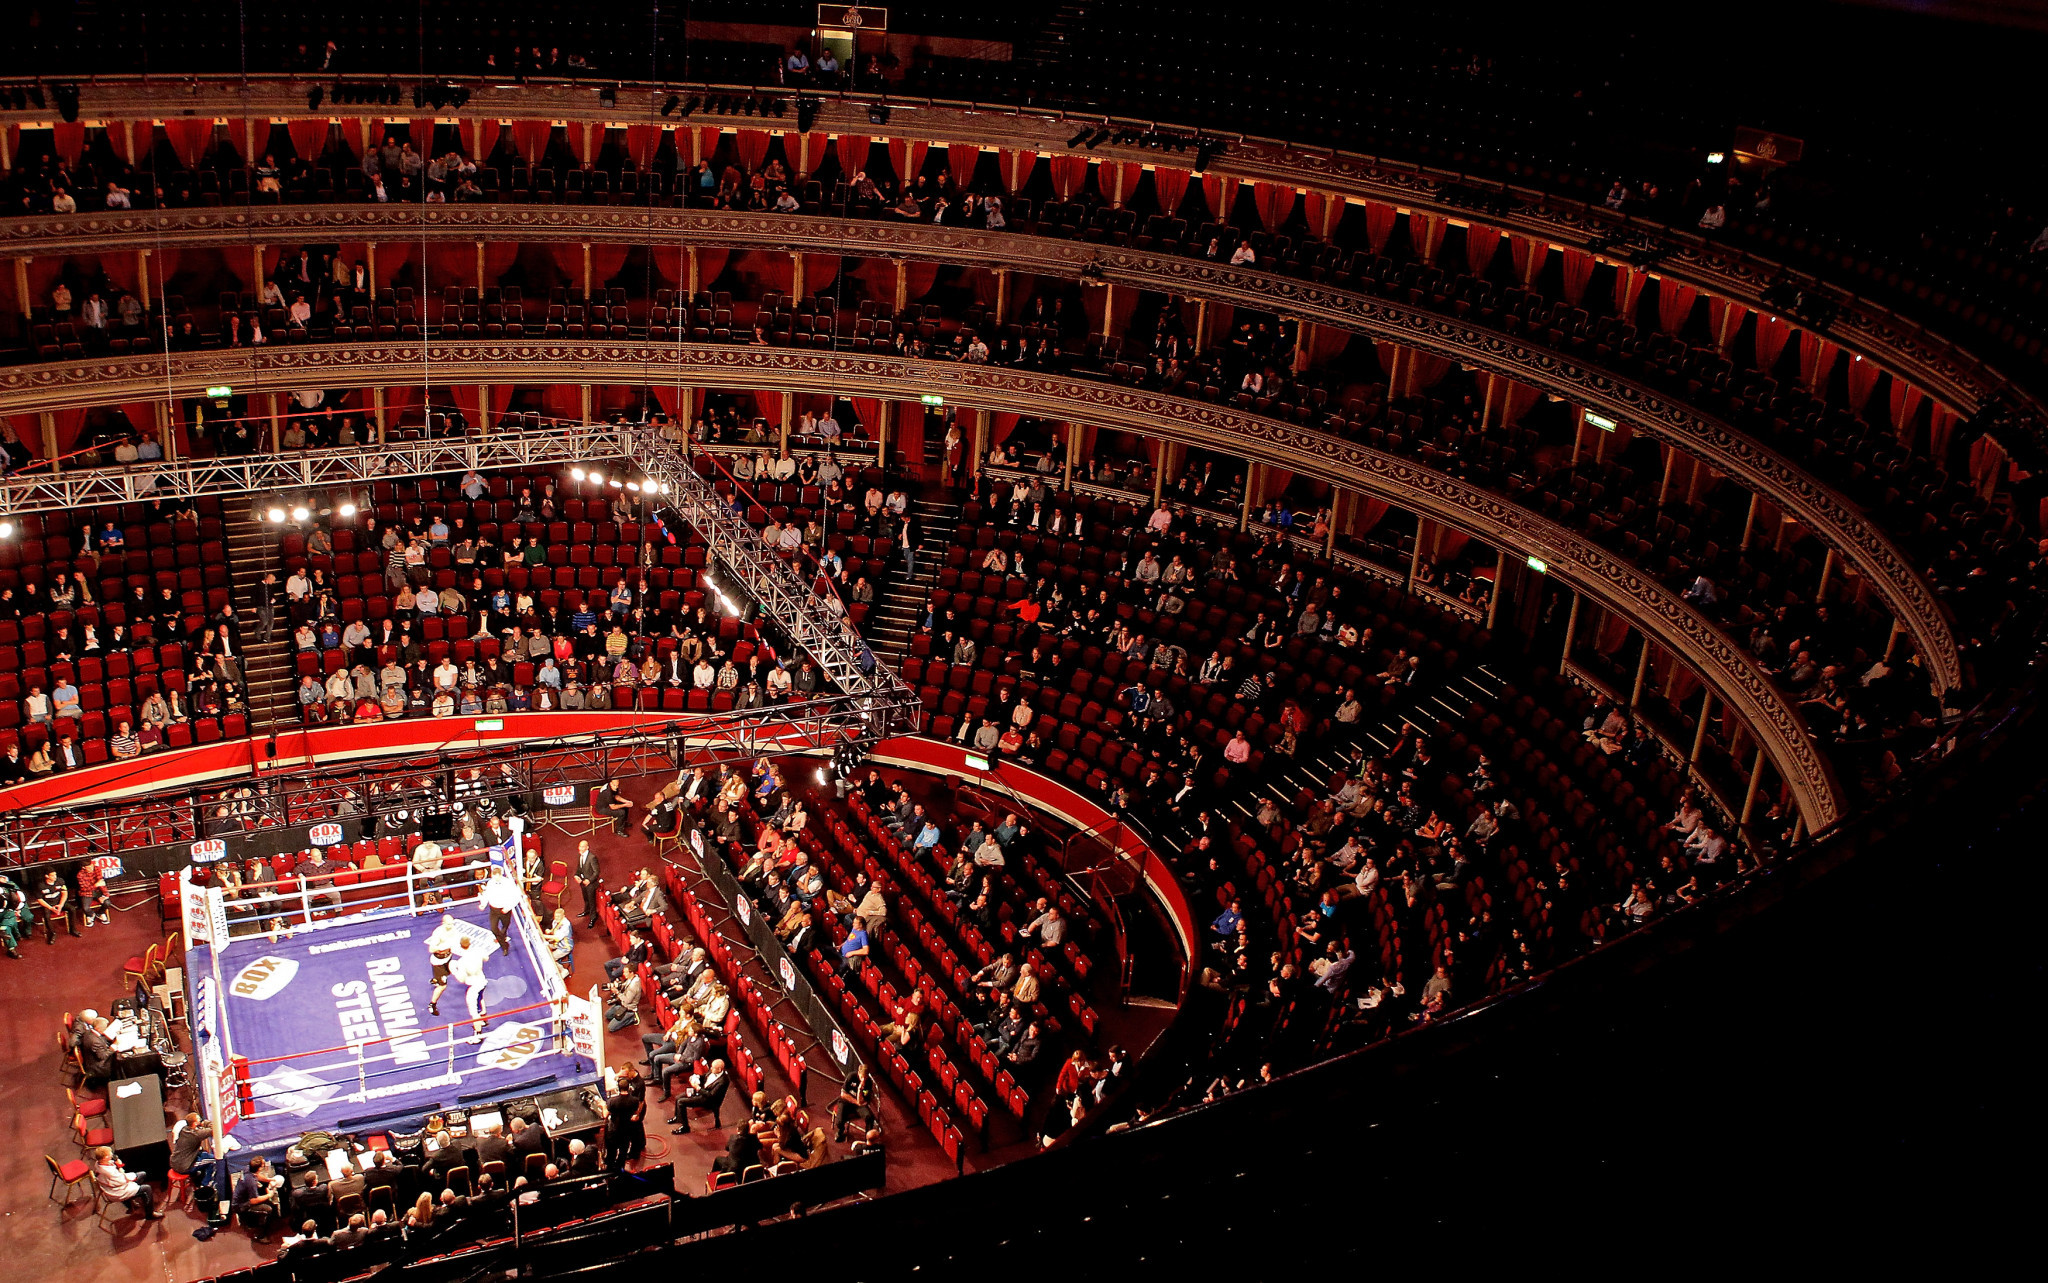 Boxing is due to return to London's famous Royal Albert Hall ©Getty Images